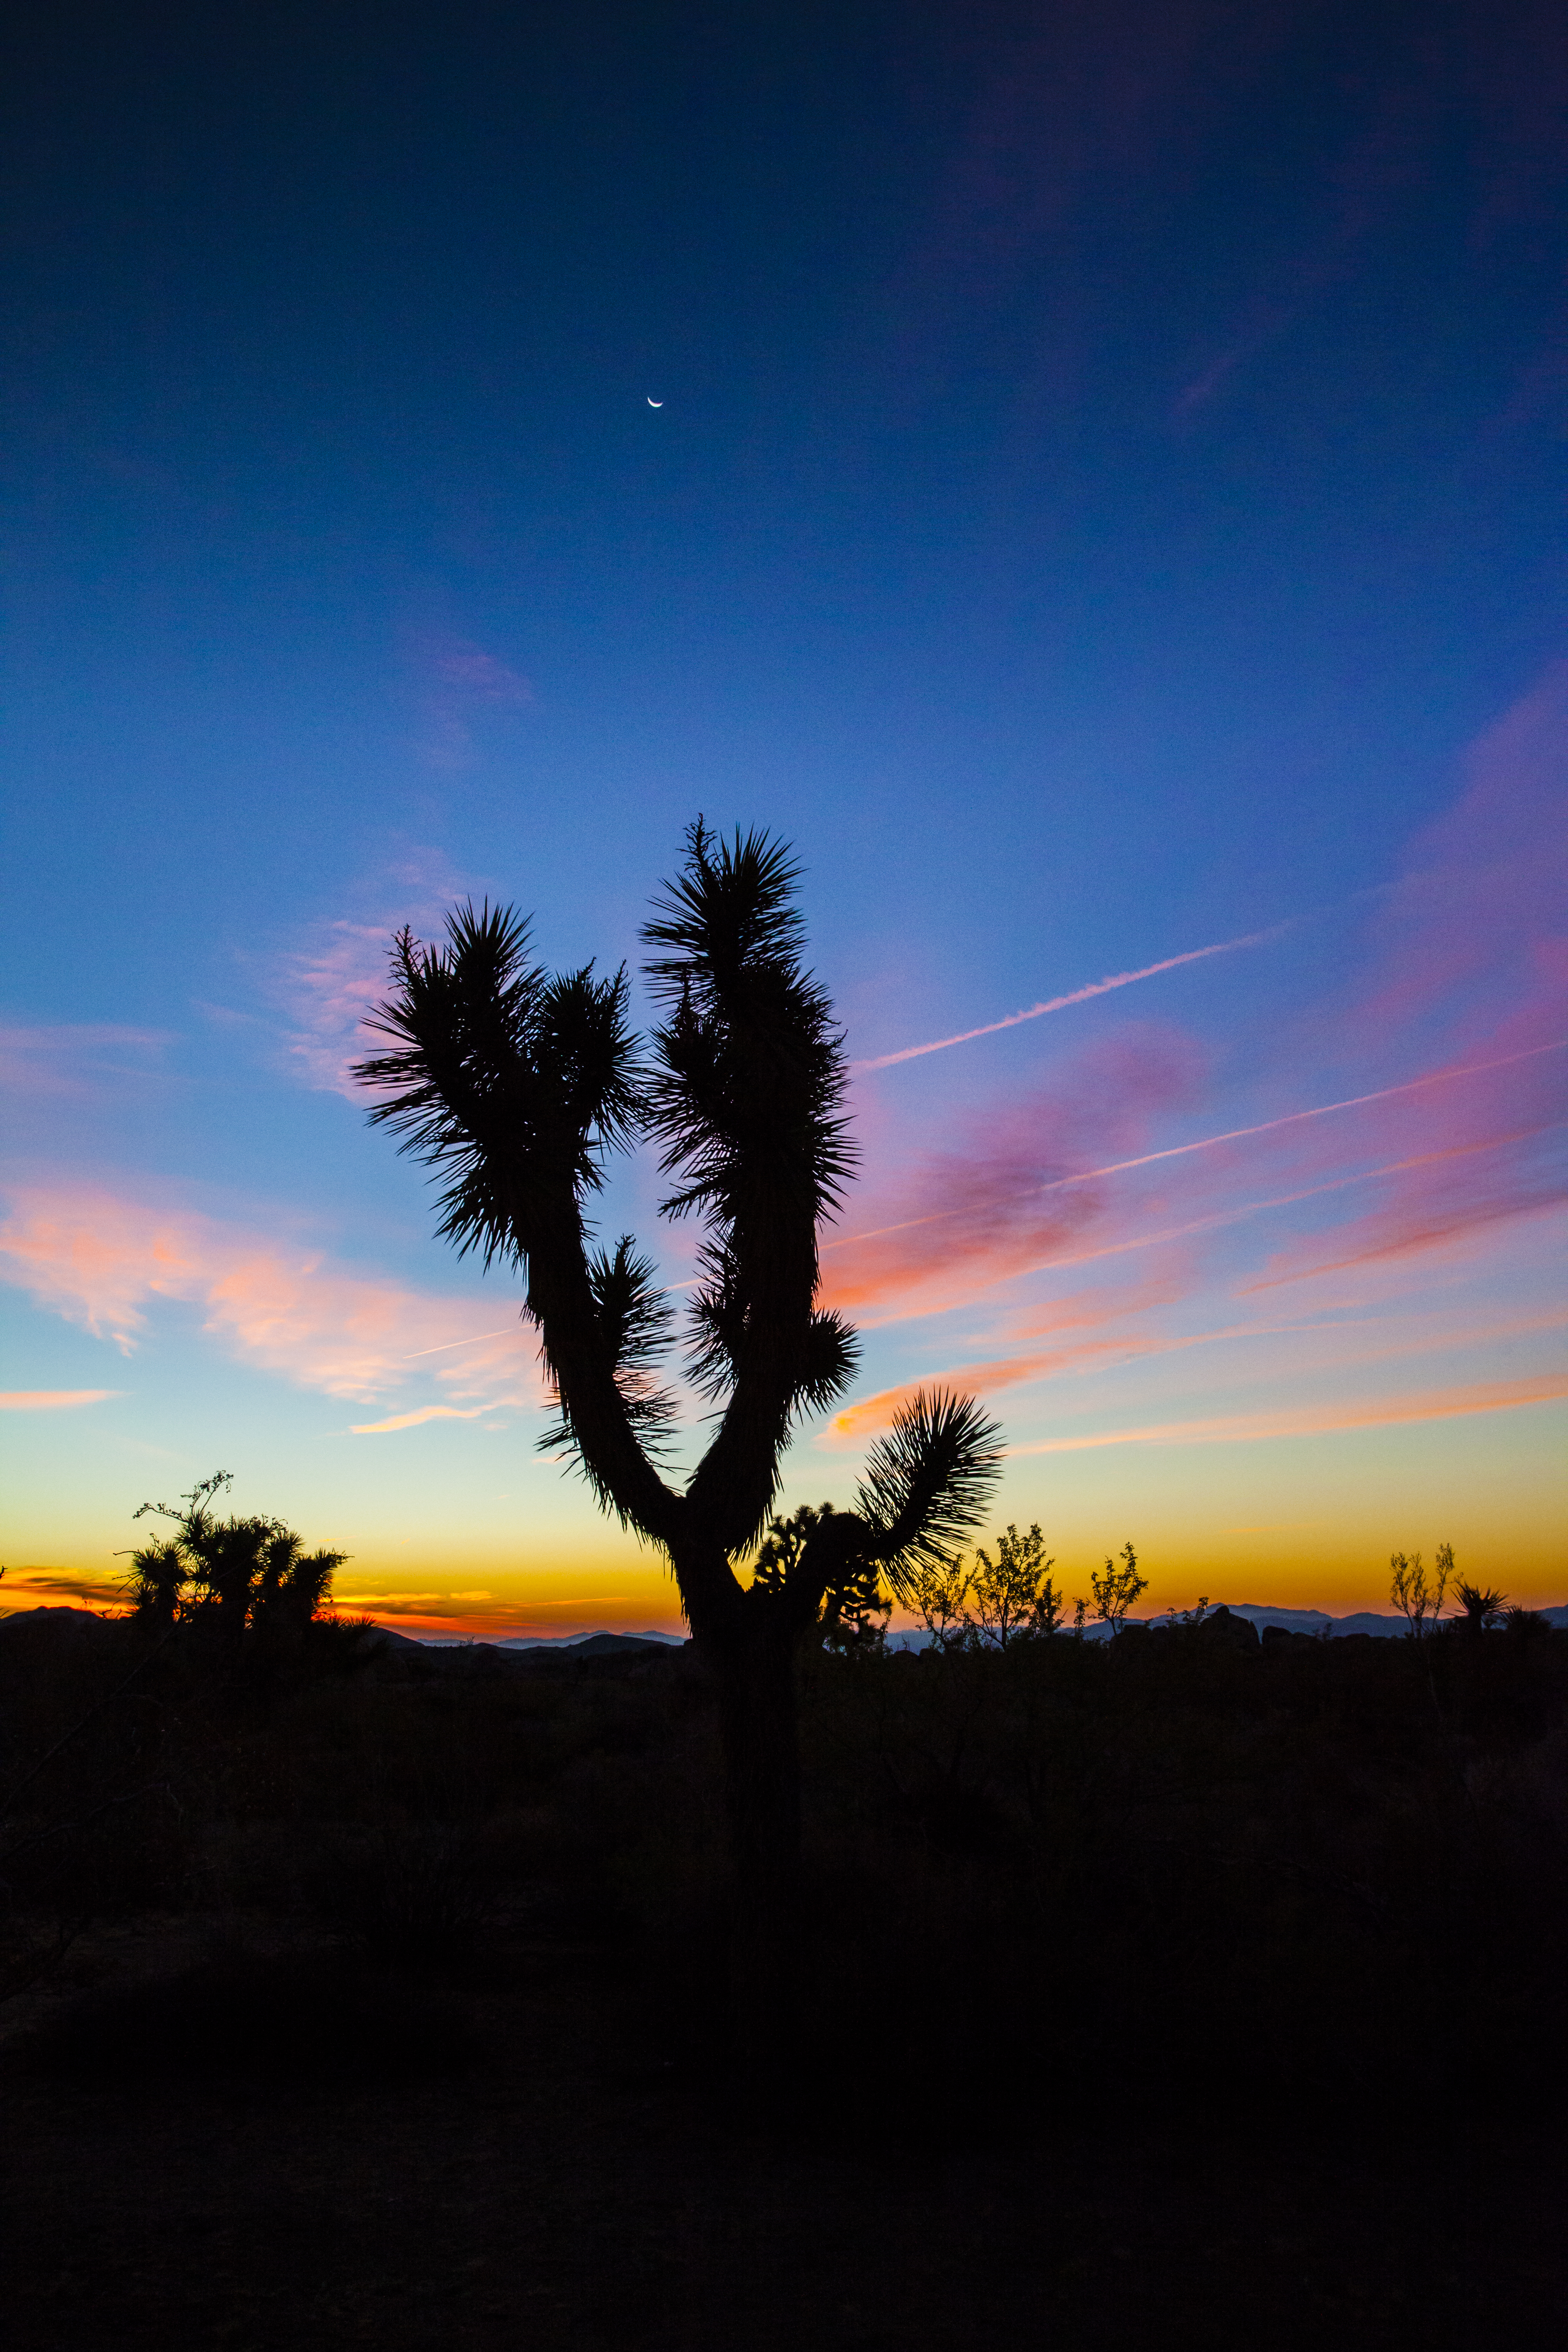 Twilight, Joshua Tree National Park